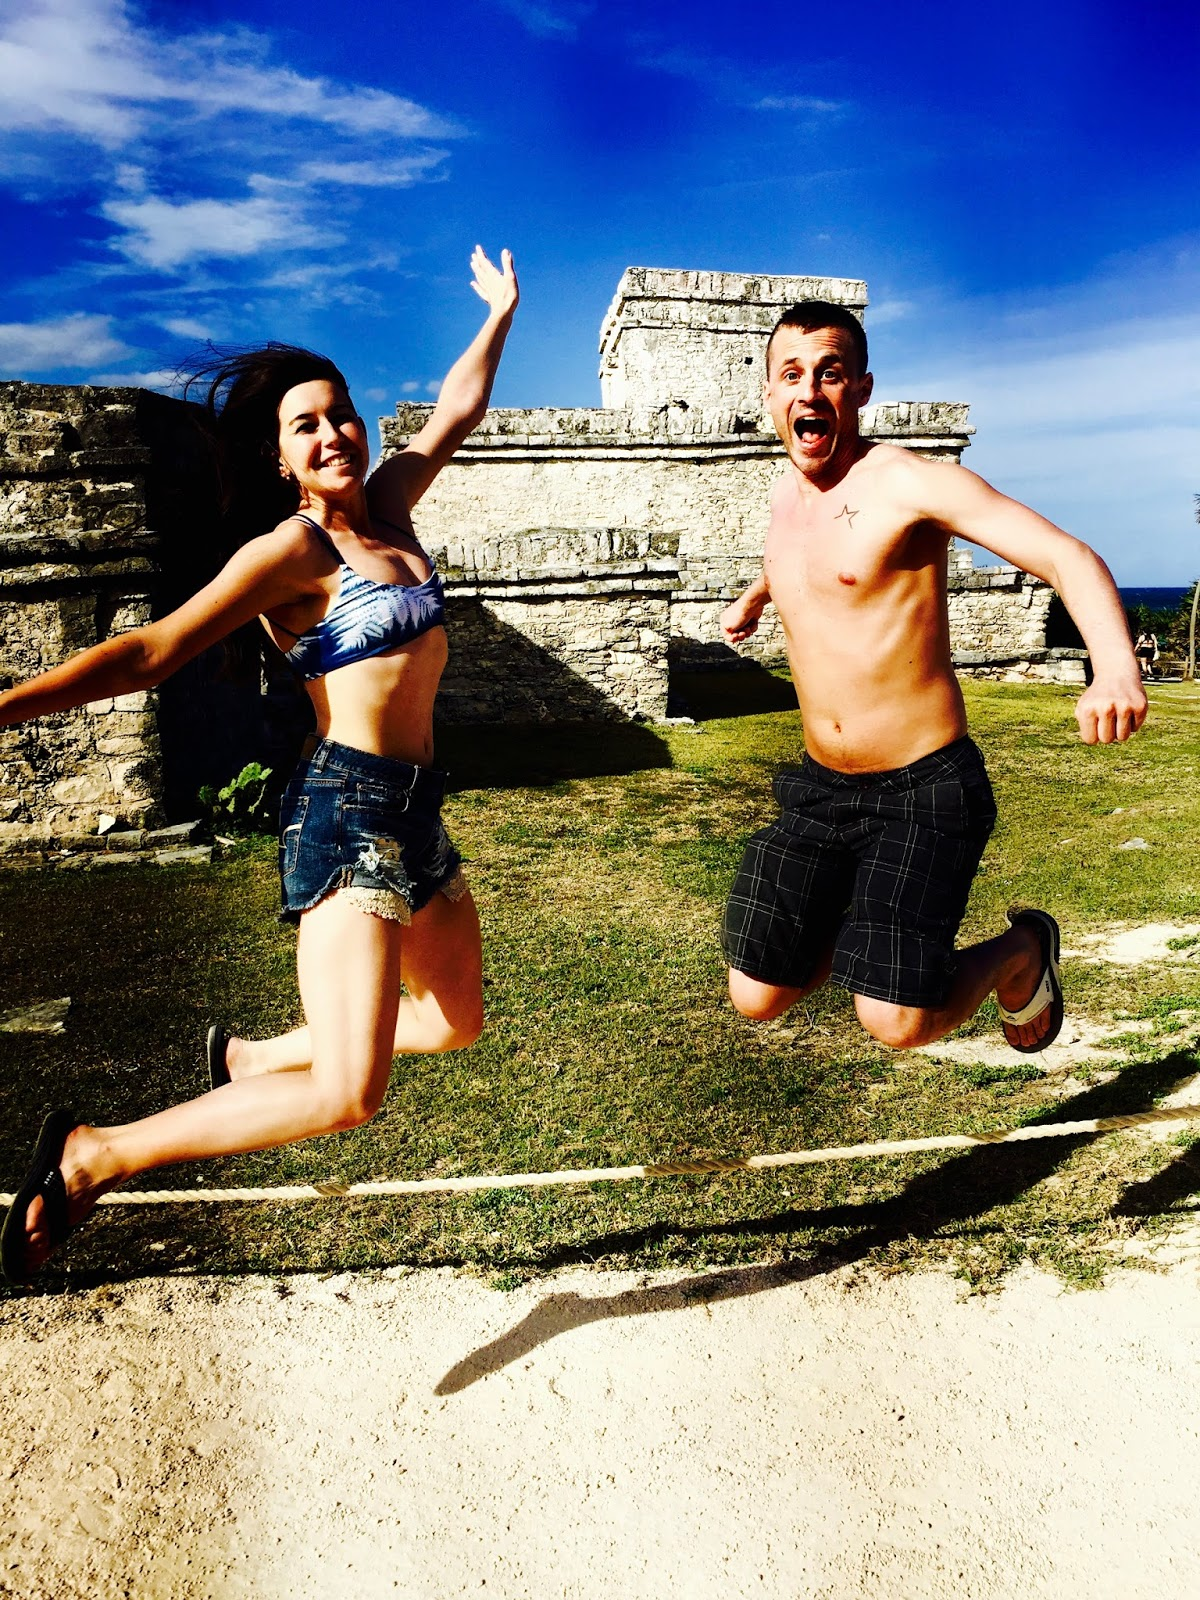 mexico, cancun, tulum, mexico vacation, spring break, playa del carmen, aztec ruins, beaches, cute couples at beach, jumping photos, love, traveling couple, traveling blog, travel, travel addicts,